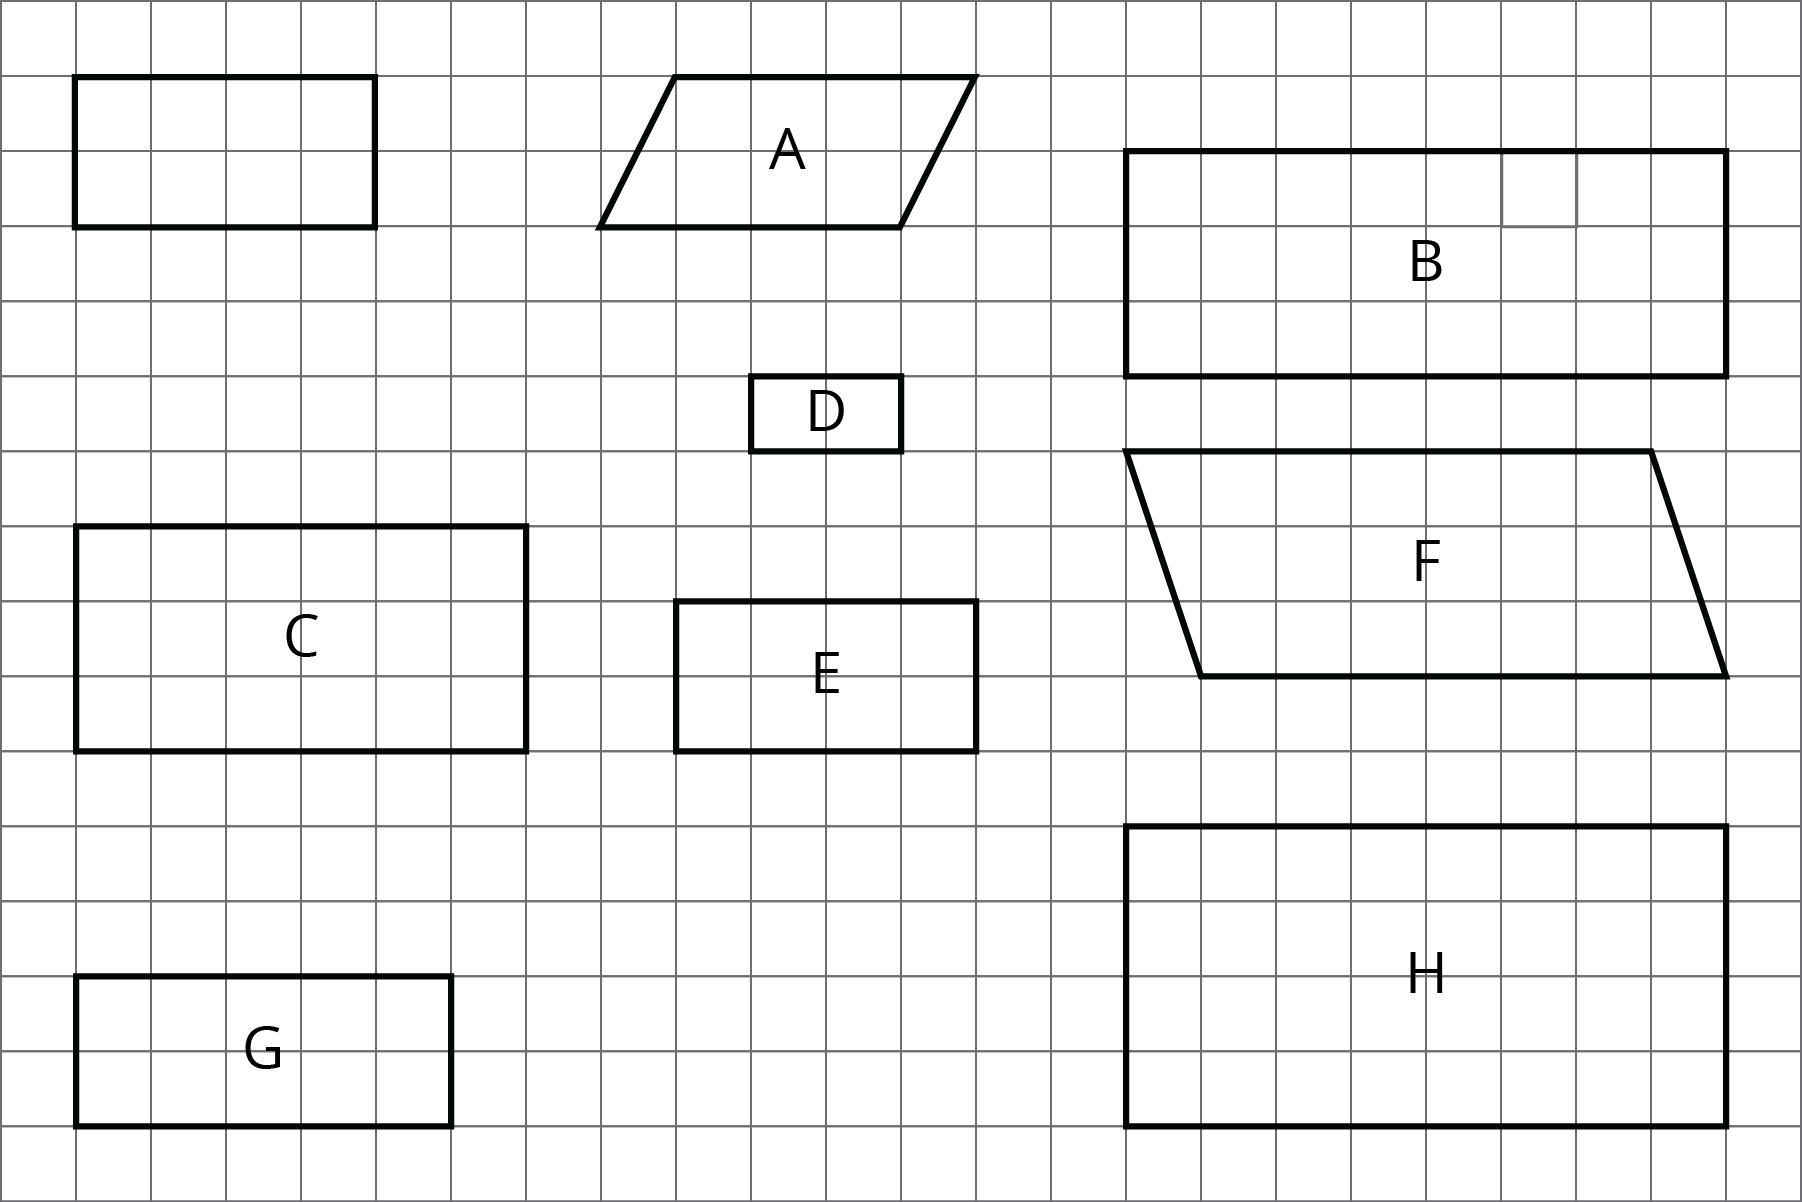 1 8 inch graph paper